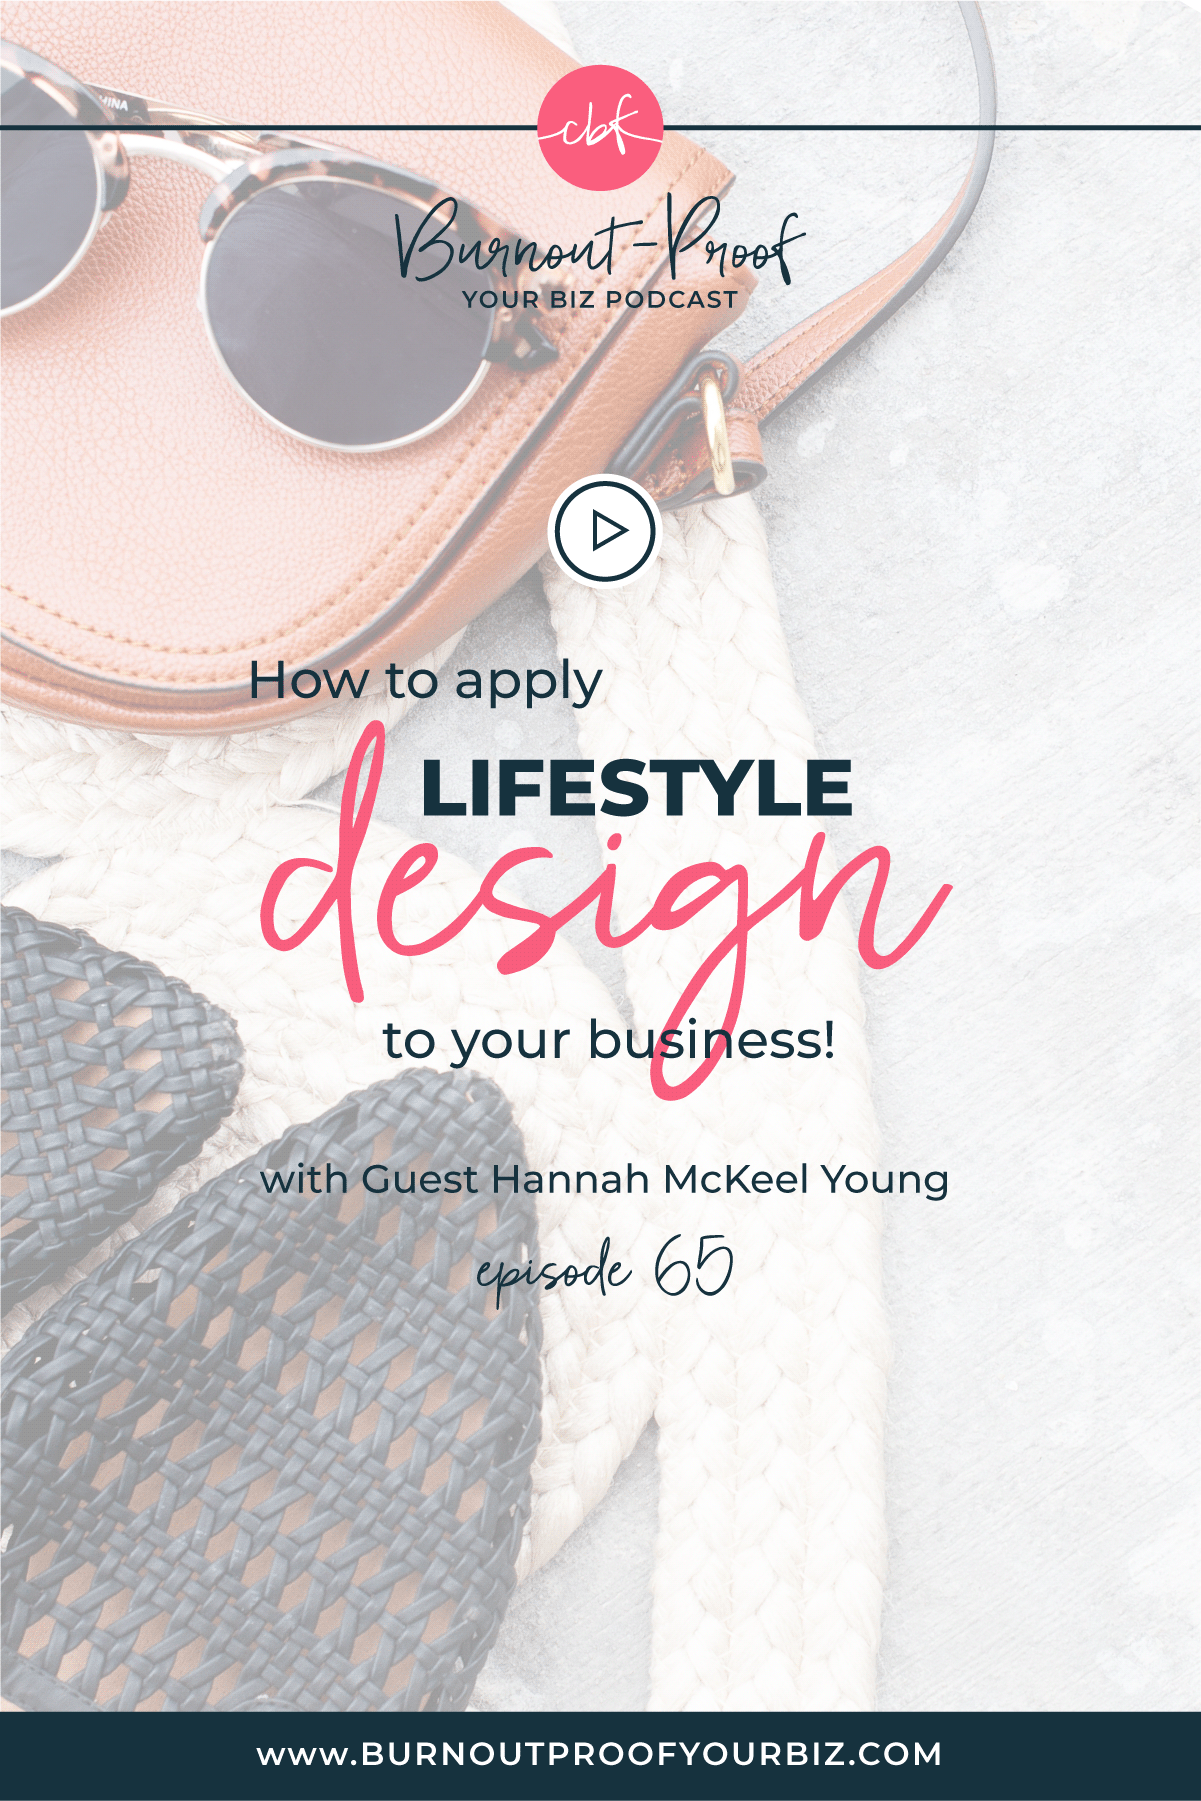 How to Apply Lifestyle Design to Your Business on the Burnout-Proof Your Biz Podcast with Chelsea B Foster | Episode 065 - How to Build a Thriving Business With Less Hustle and More Flow with Hannah McKeel Young from Yes Please! | Learn how to run your biz and live your dream life on your own terms without the fear of burnout.  |||  BURNOUT-PROOF YOUR BUSINESS PODCAST | WORKFLOW & PRODUCTIVITY SPECIALIST | LIFESTYLE DESIGN | FREEDOM LIFESTYLE | DESIRES & INTENTIONS | MINDFULNESS | HANNAH MCKEEL YOUNG | AUTHENTICITY